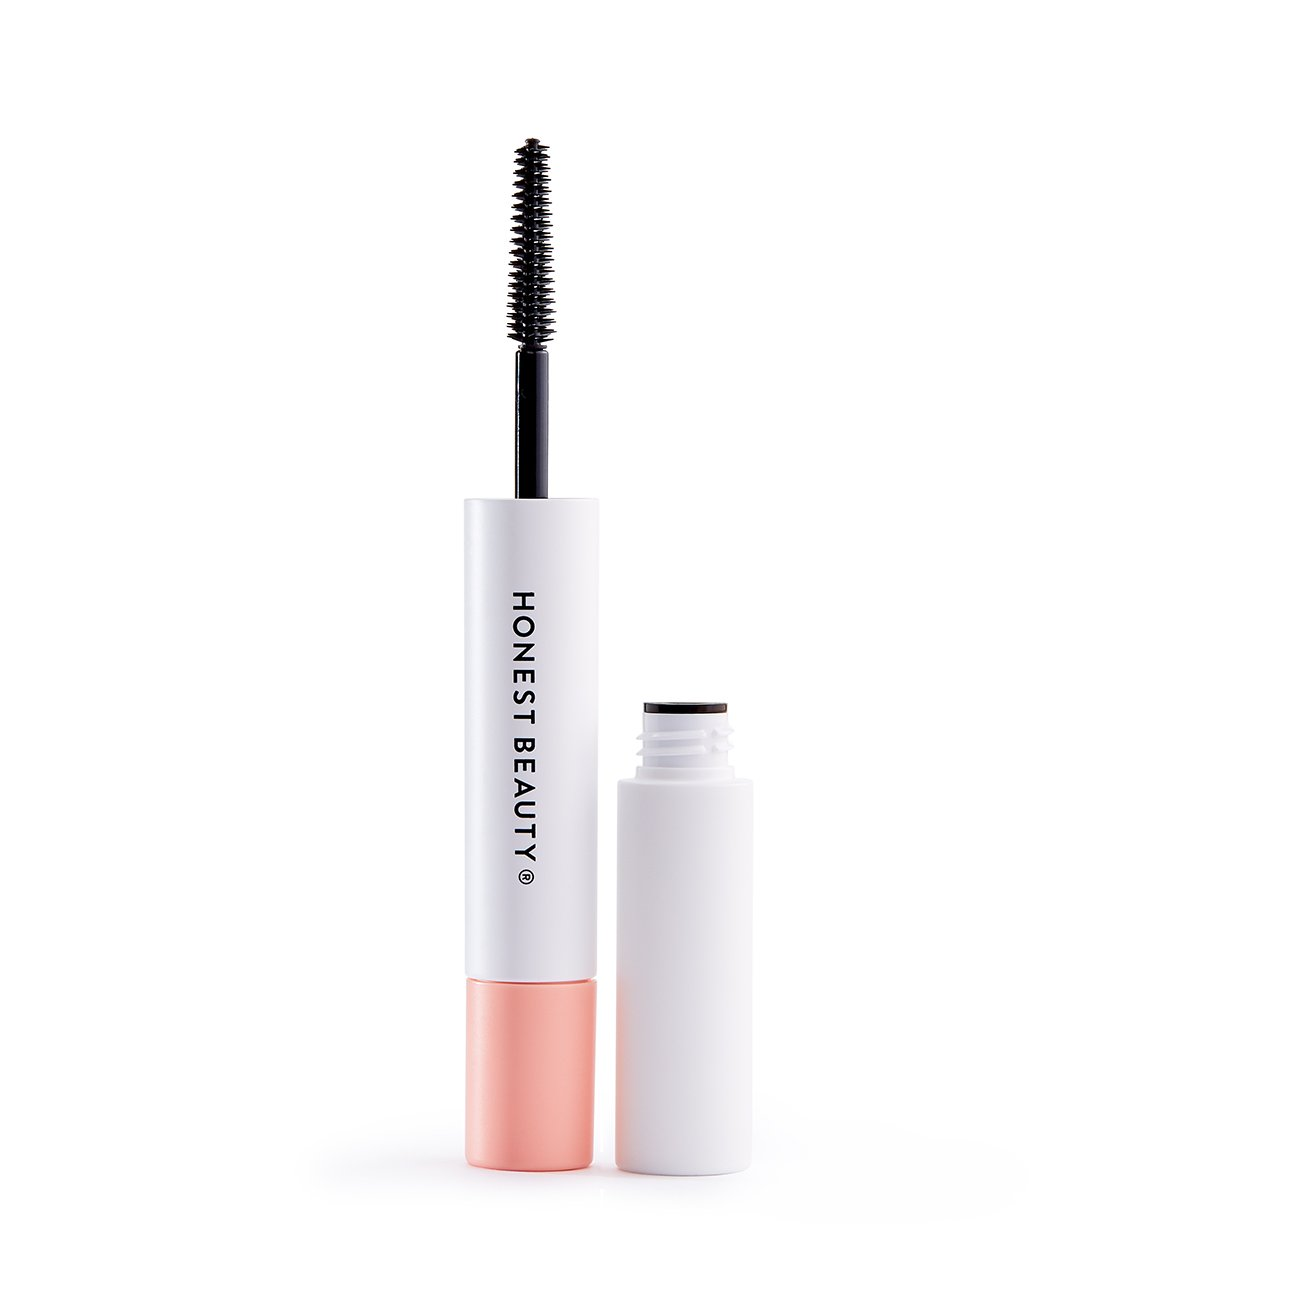 Honest Beauty Extreme Length Mascara + Lash Primer | 2-in-1 Boosts Lash Length, Volume & Definition | Silicone Free, Paraben Free, Dermatologist & Ophthalmologist Tested, Cruelty Free | 0.27 fl. oz. by Honest Beauty